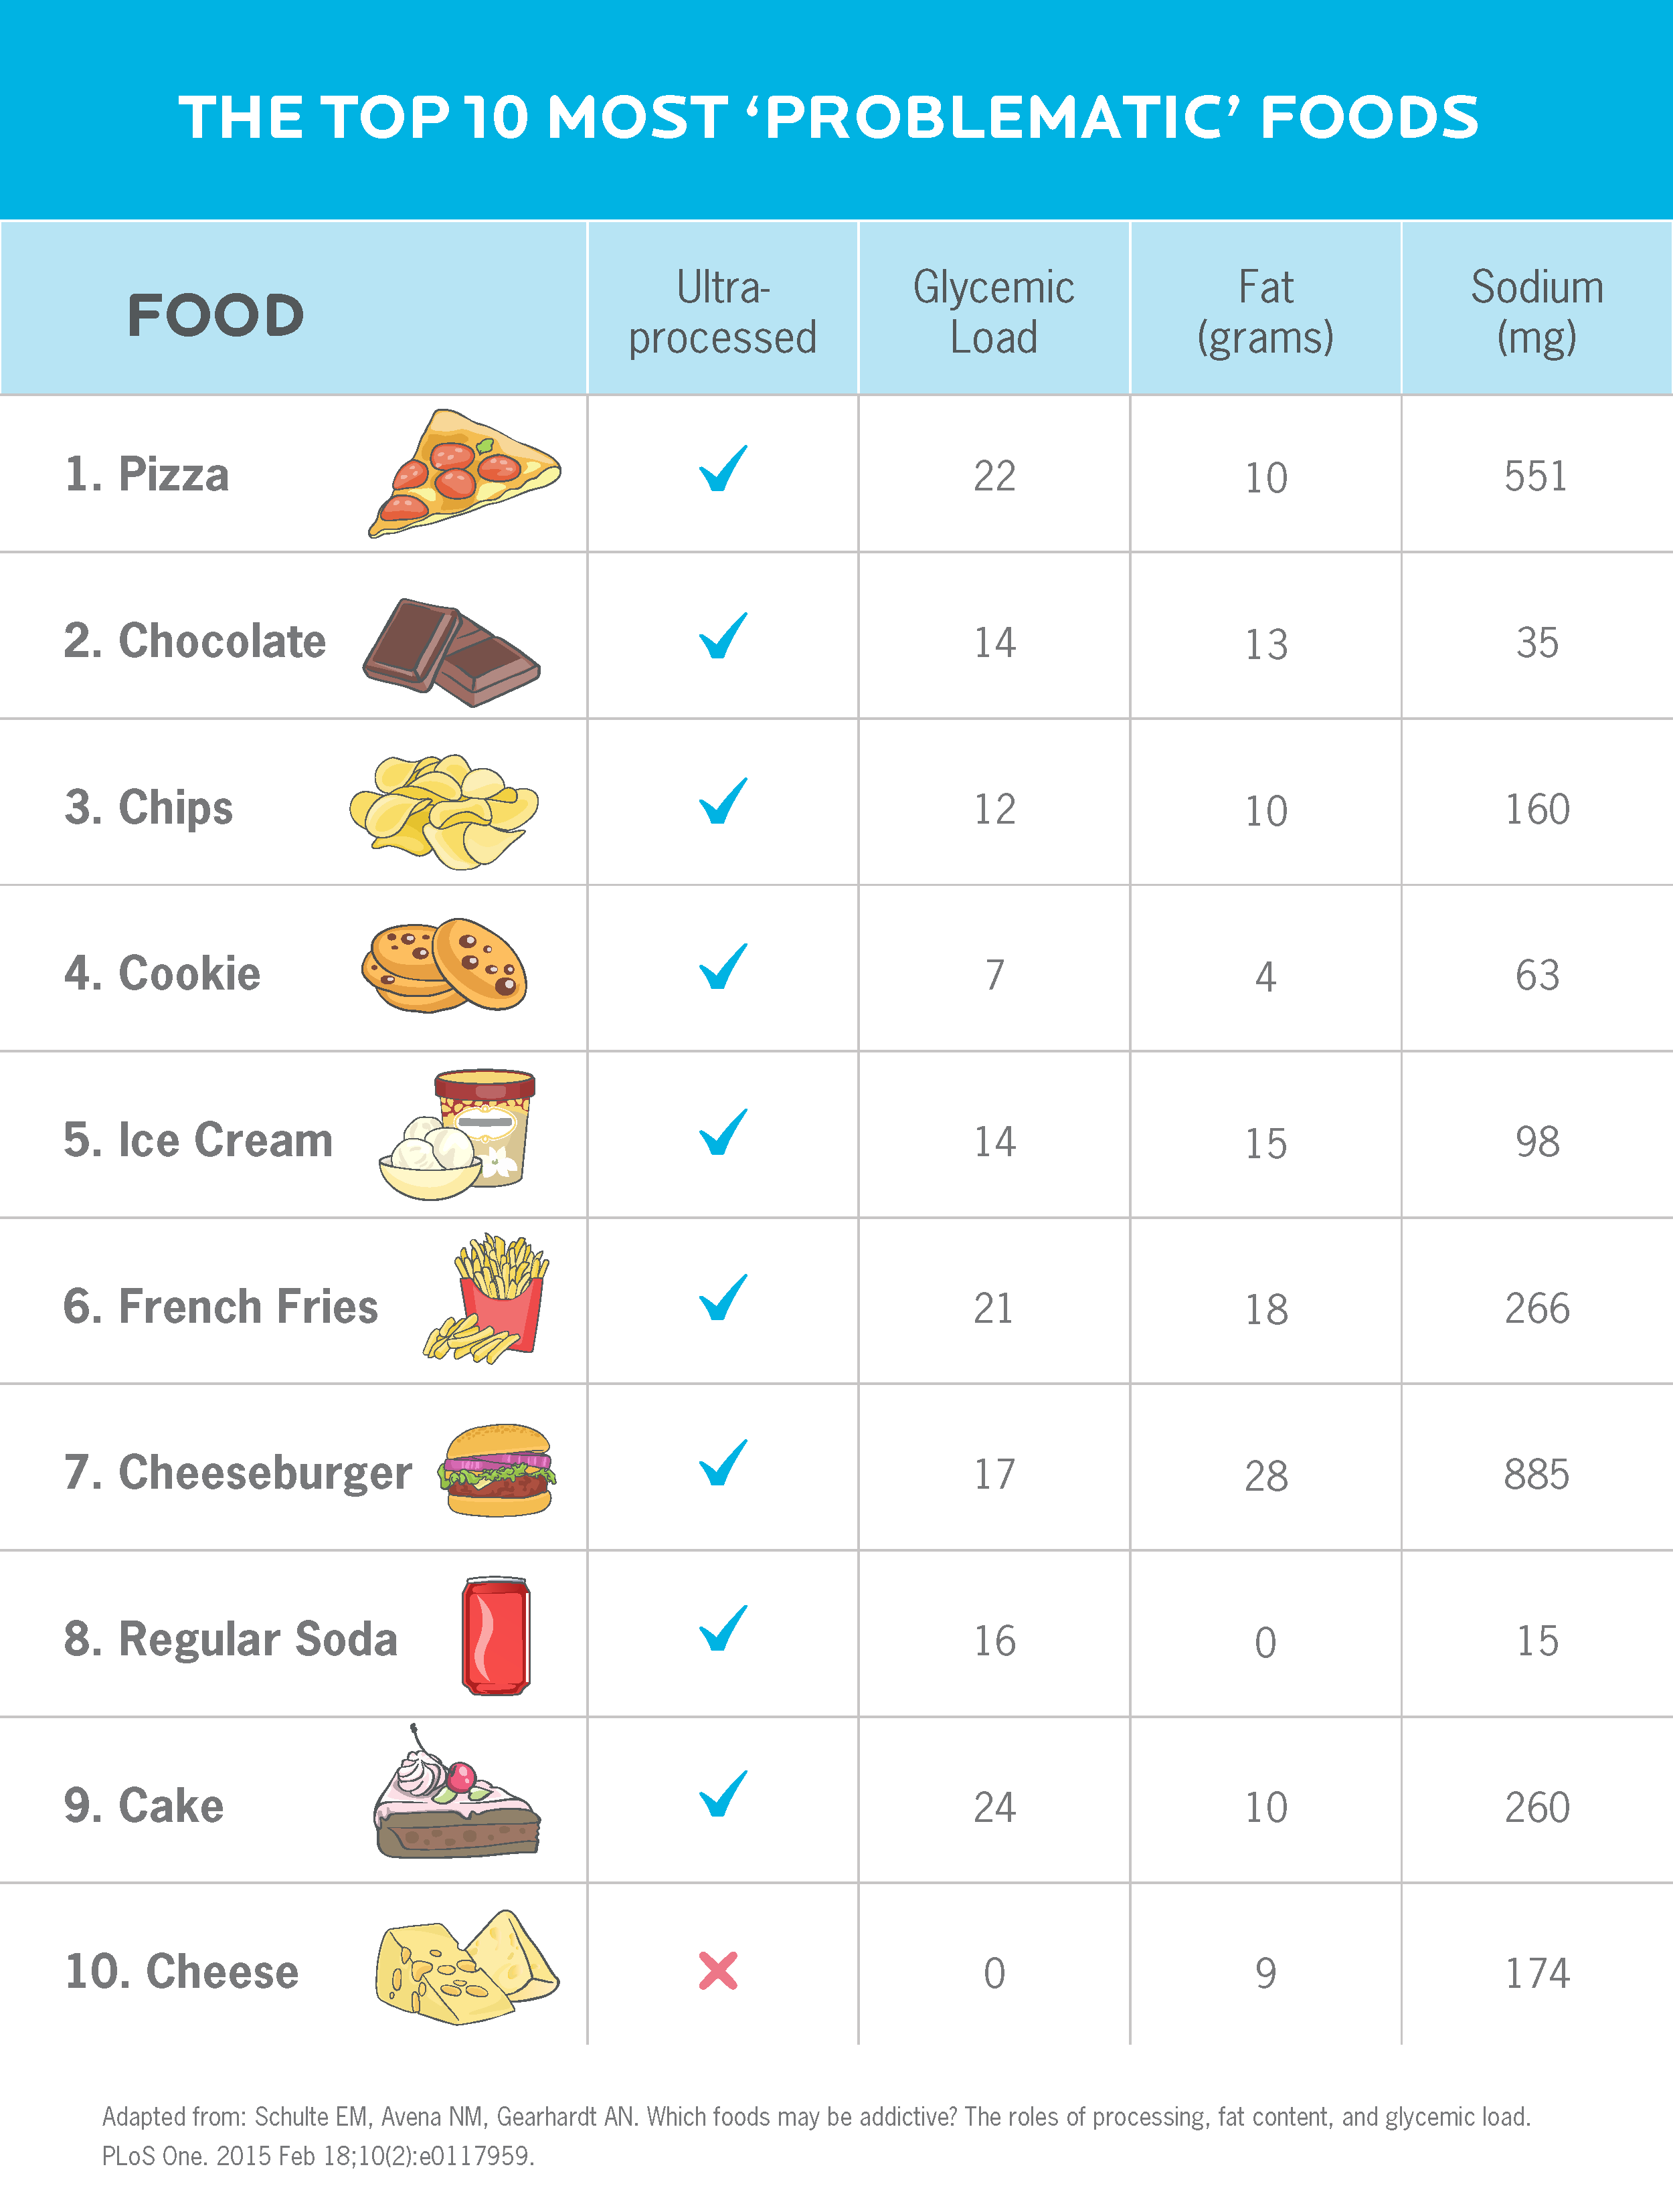 """A chart showing the top 10 most """"addictive"""" foods. In order, they are: 1) pizza, 2) chocolate, 3) chips, 4) cookie, 5) ice cream, 6) French fries, 7) cheeseburger, 8) regular soda, 9) cake, 10) cheese.) All but one of the foods (cheese) are ultra-processed."""